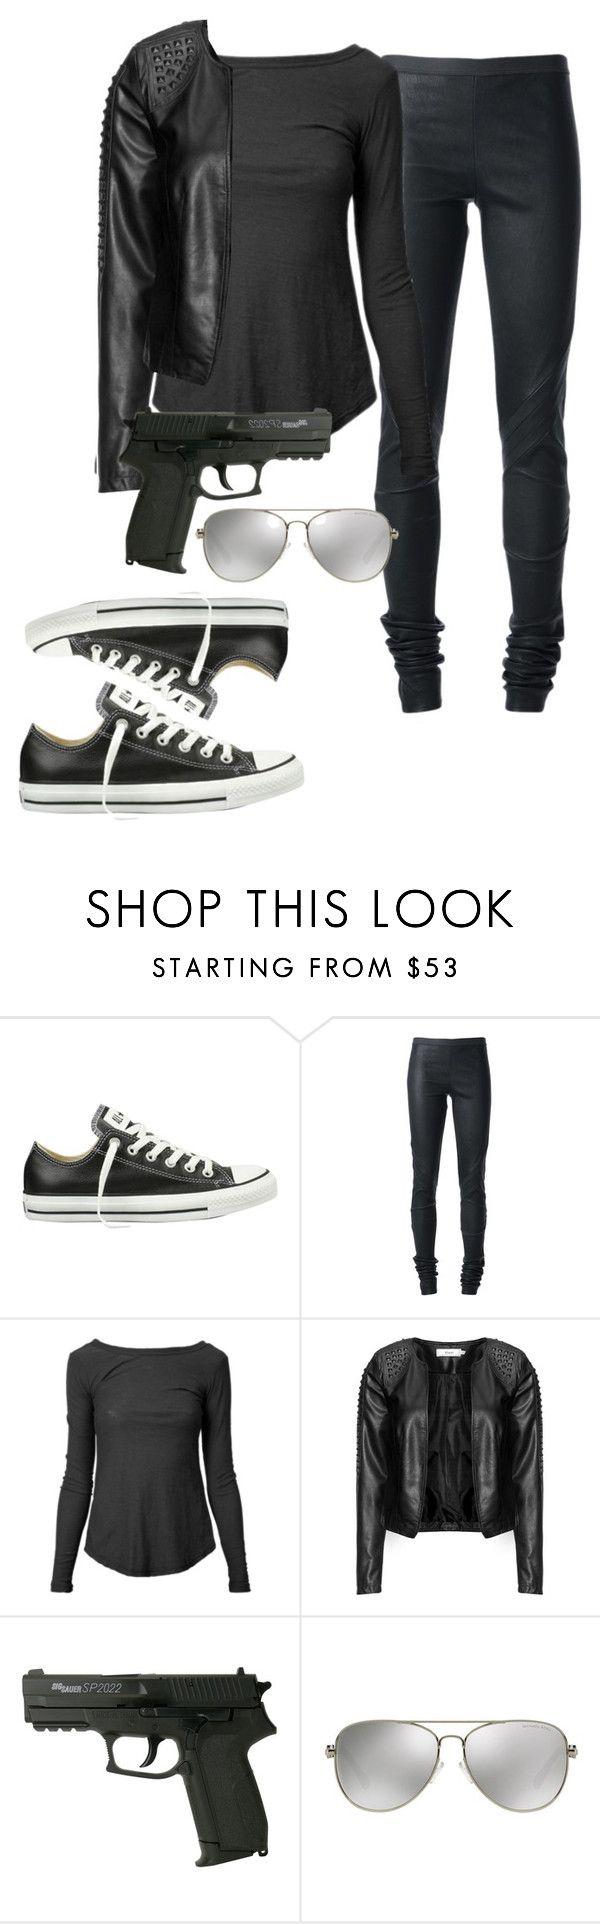 """Halloween costume: a badass spy"" by agirlfromnarnia ❤ liked on Polyvore featuring Mode, Converse, Rick Owens, James Perse, Zizzi und MICHAEL Michael Kors"